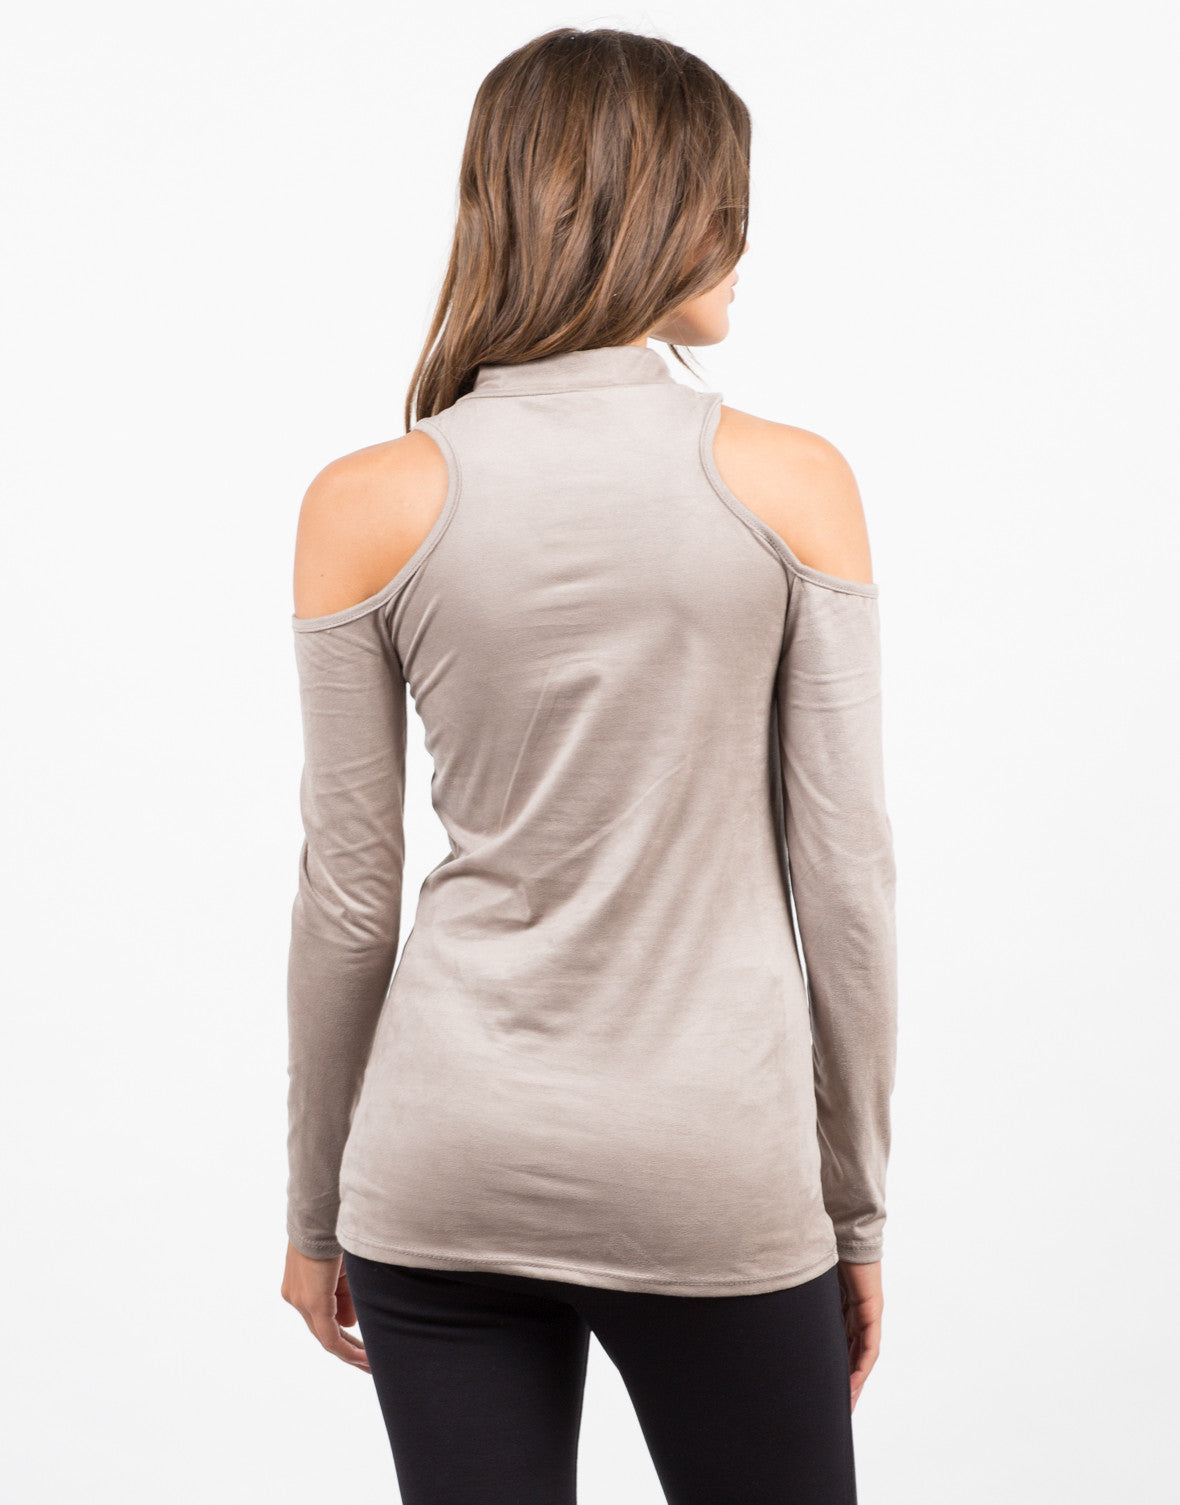 Back View of Cold Shoulder Suede Top